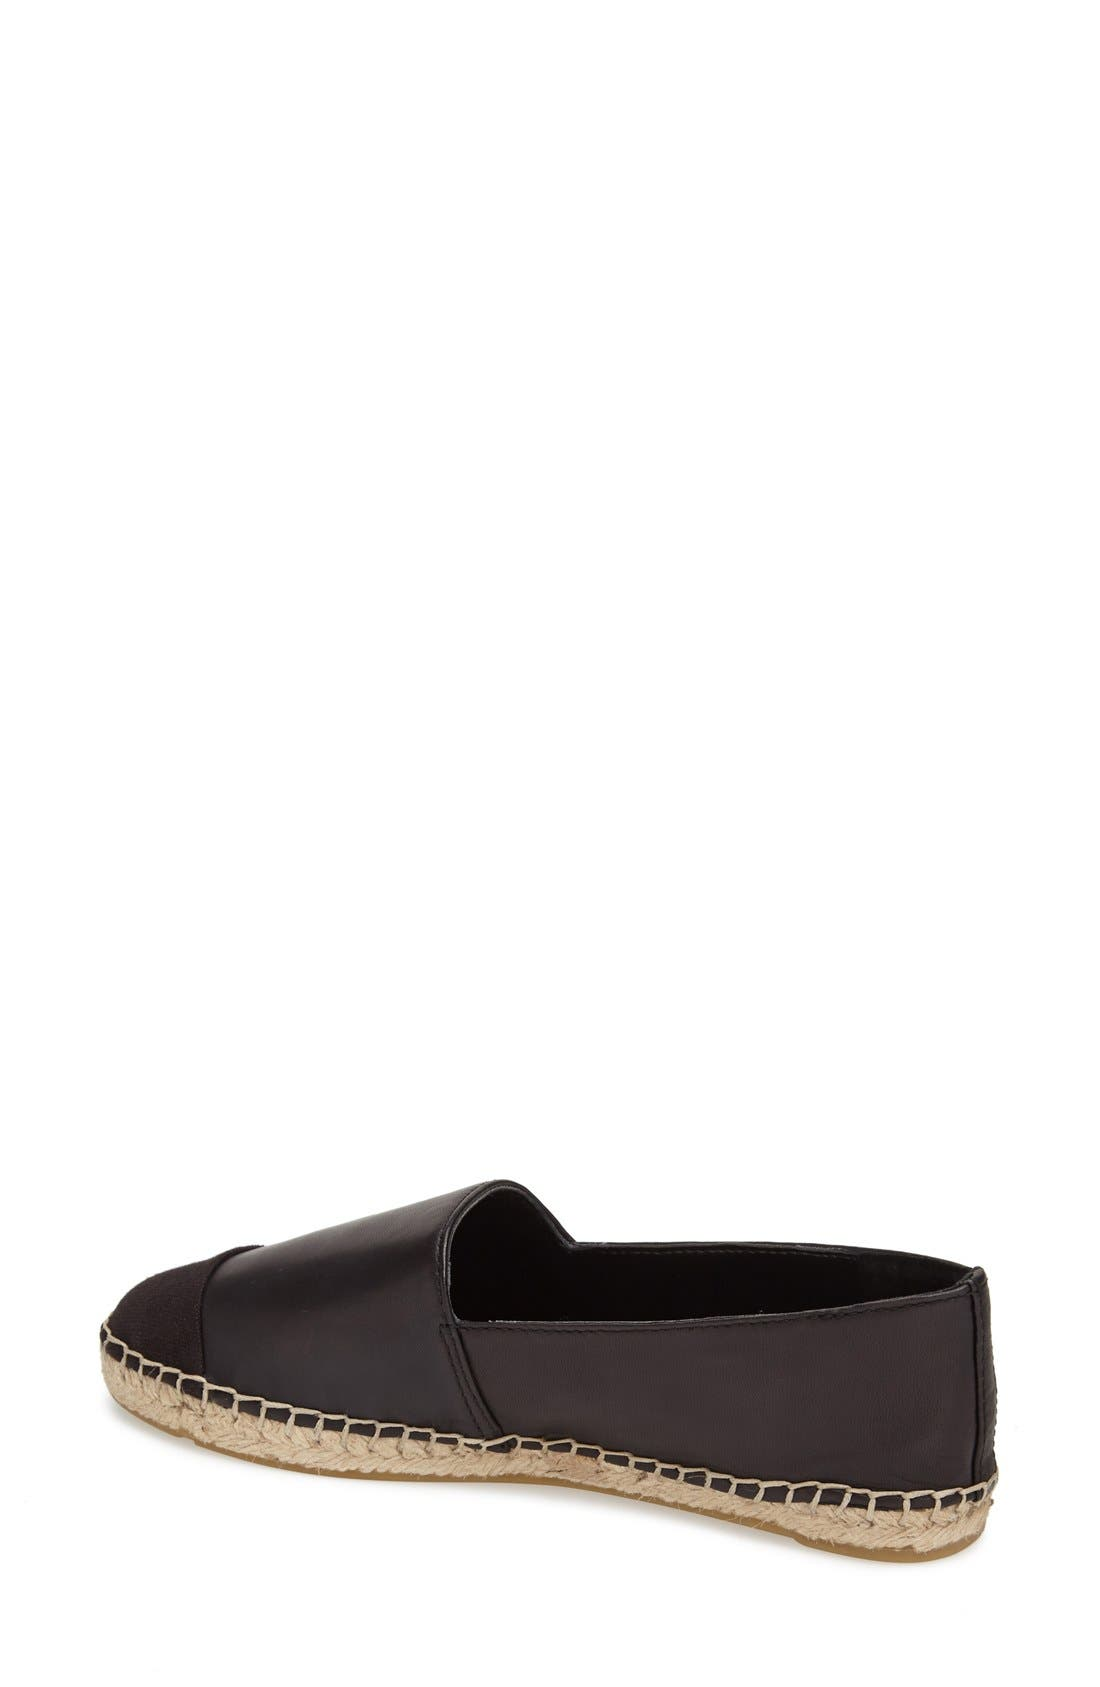 Alternate Image 2  - Vince Camuto 'Dally' Leather Espadrille Flat (Women)